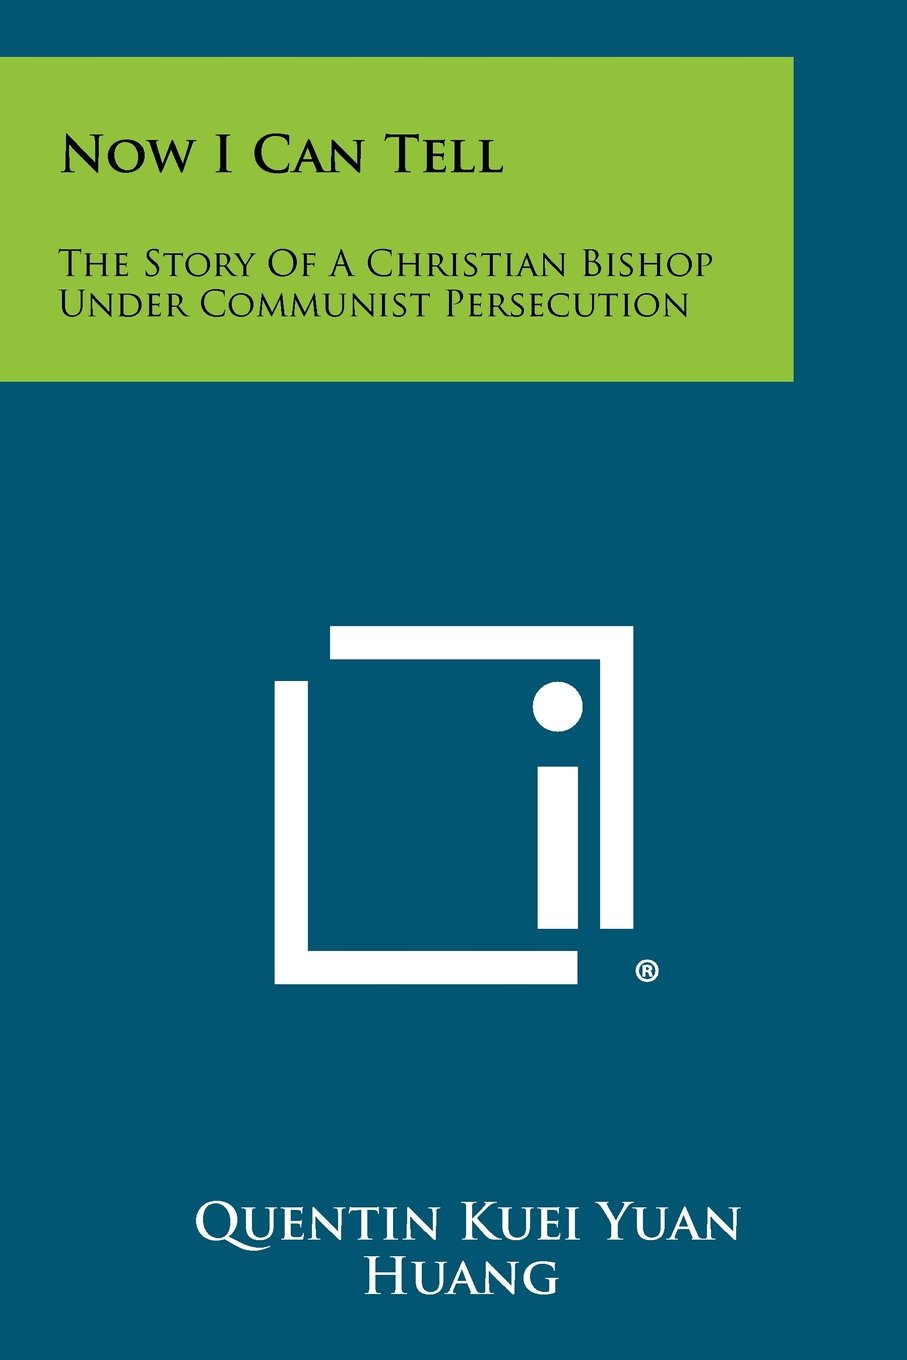 Now I Can Tell: The Story of a Christian Bishop Under Communist Persecution ebook